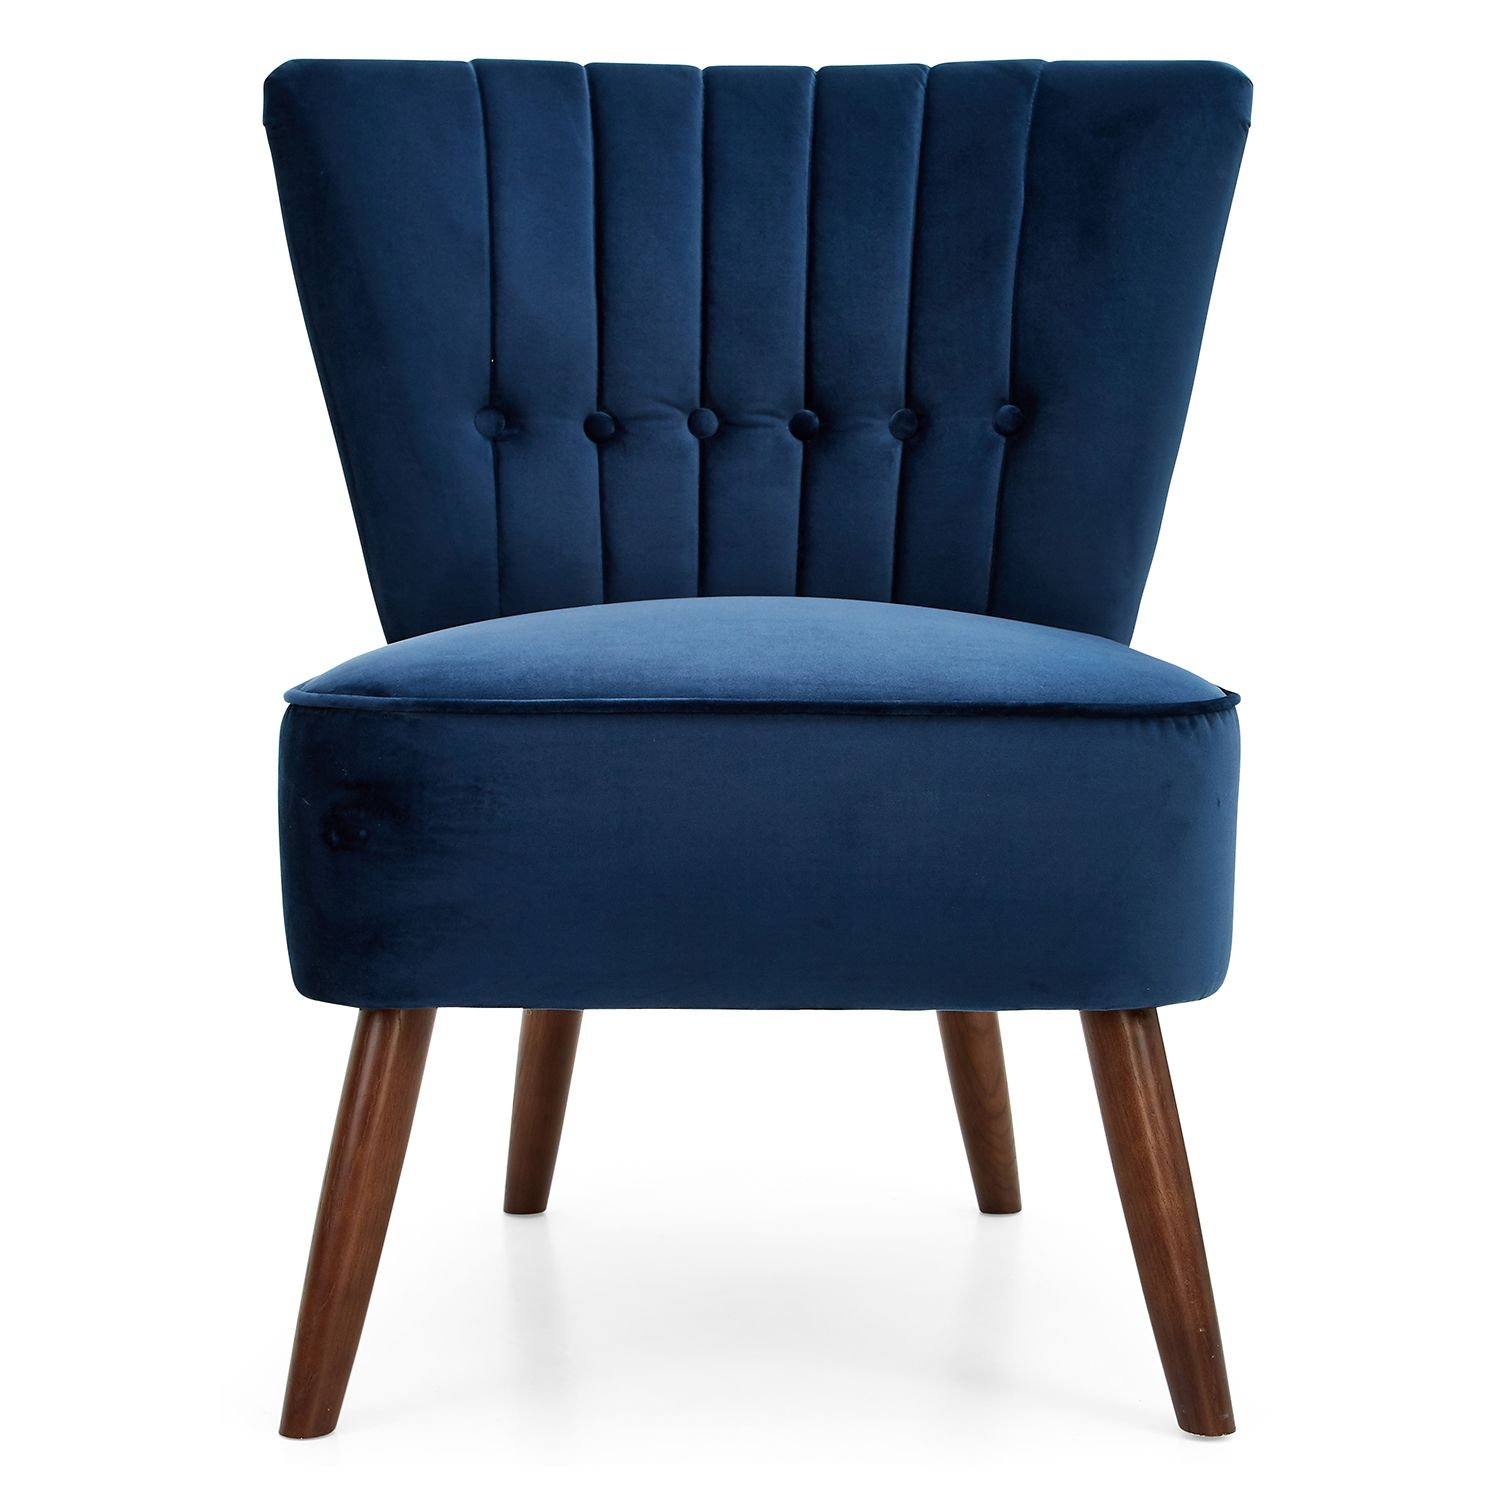 Isla velvet button back cocktail chair next day delivery isla velvet button back cocktail chair from worldstores everything for the home